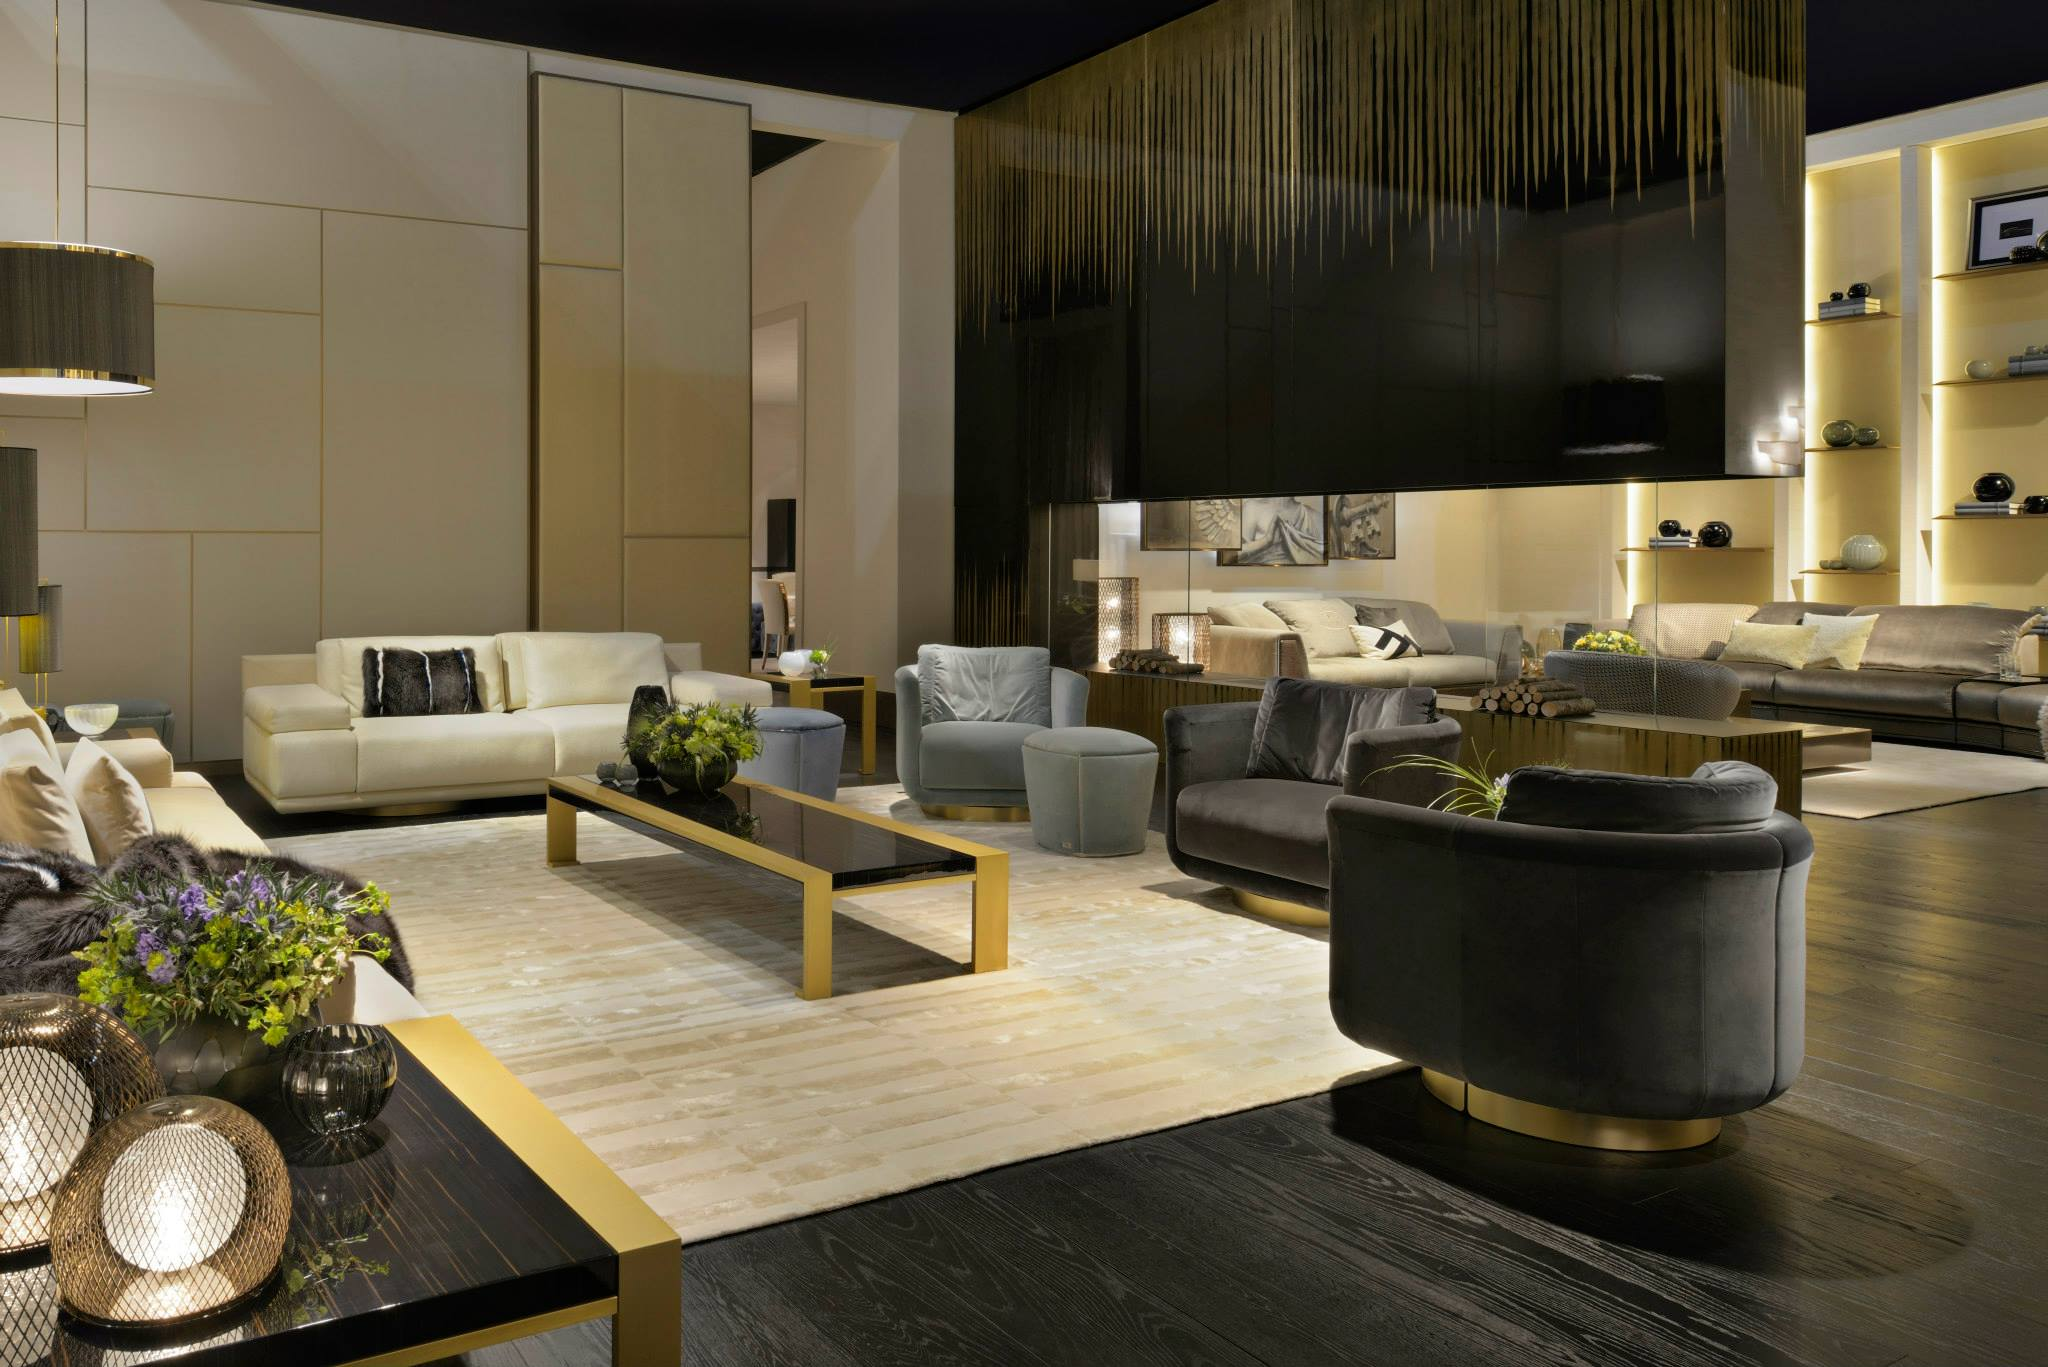 Fendi casa collection by thierry lemaire 20142luxury2 com for Luxury home collection